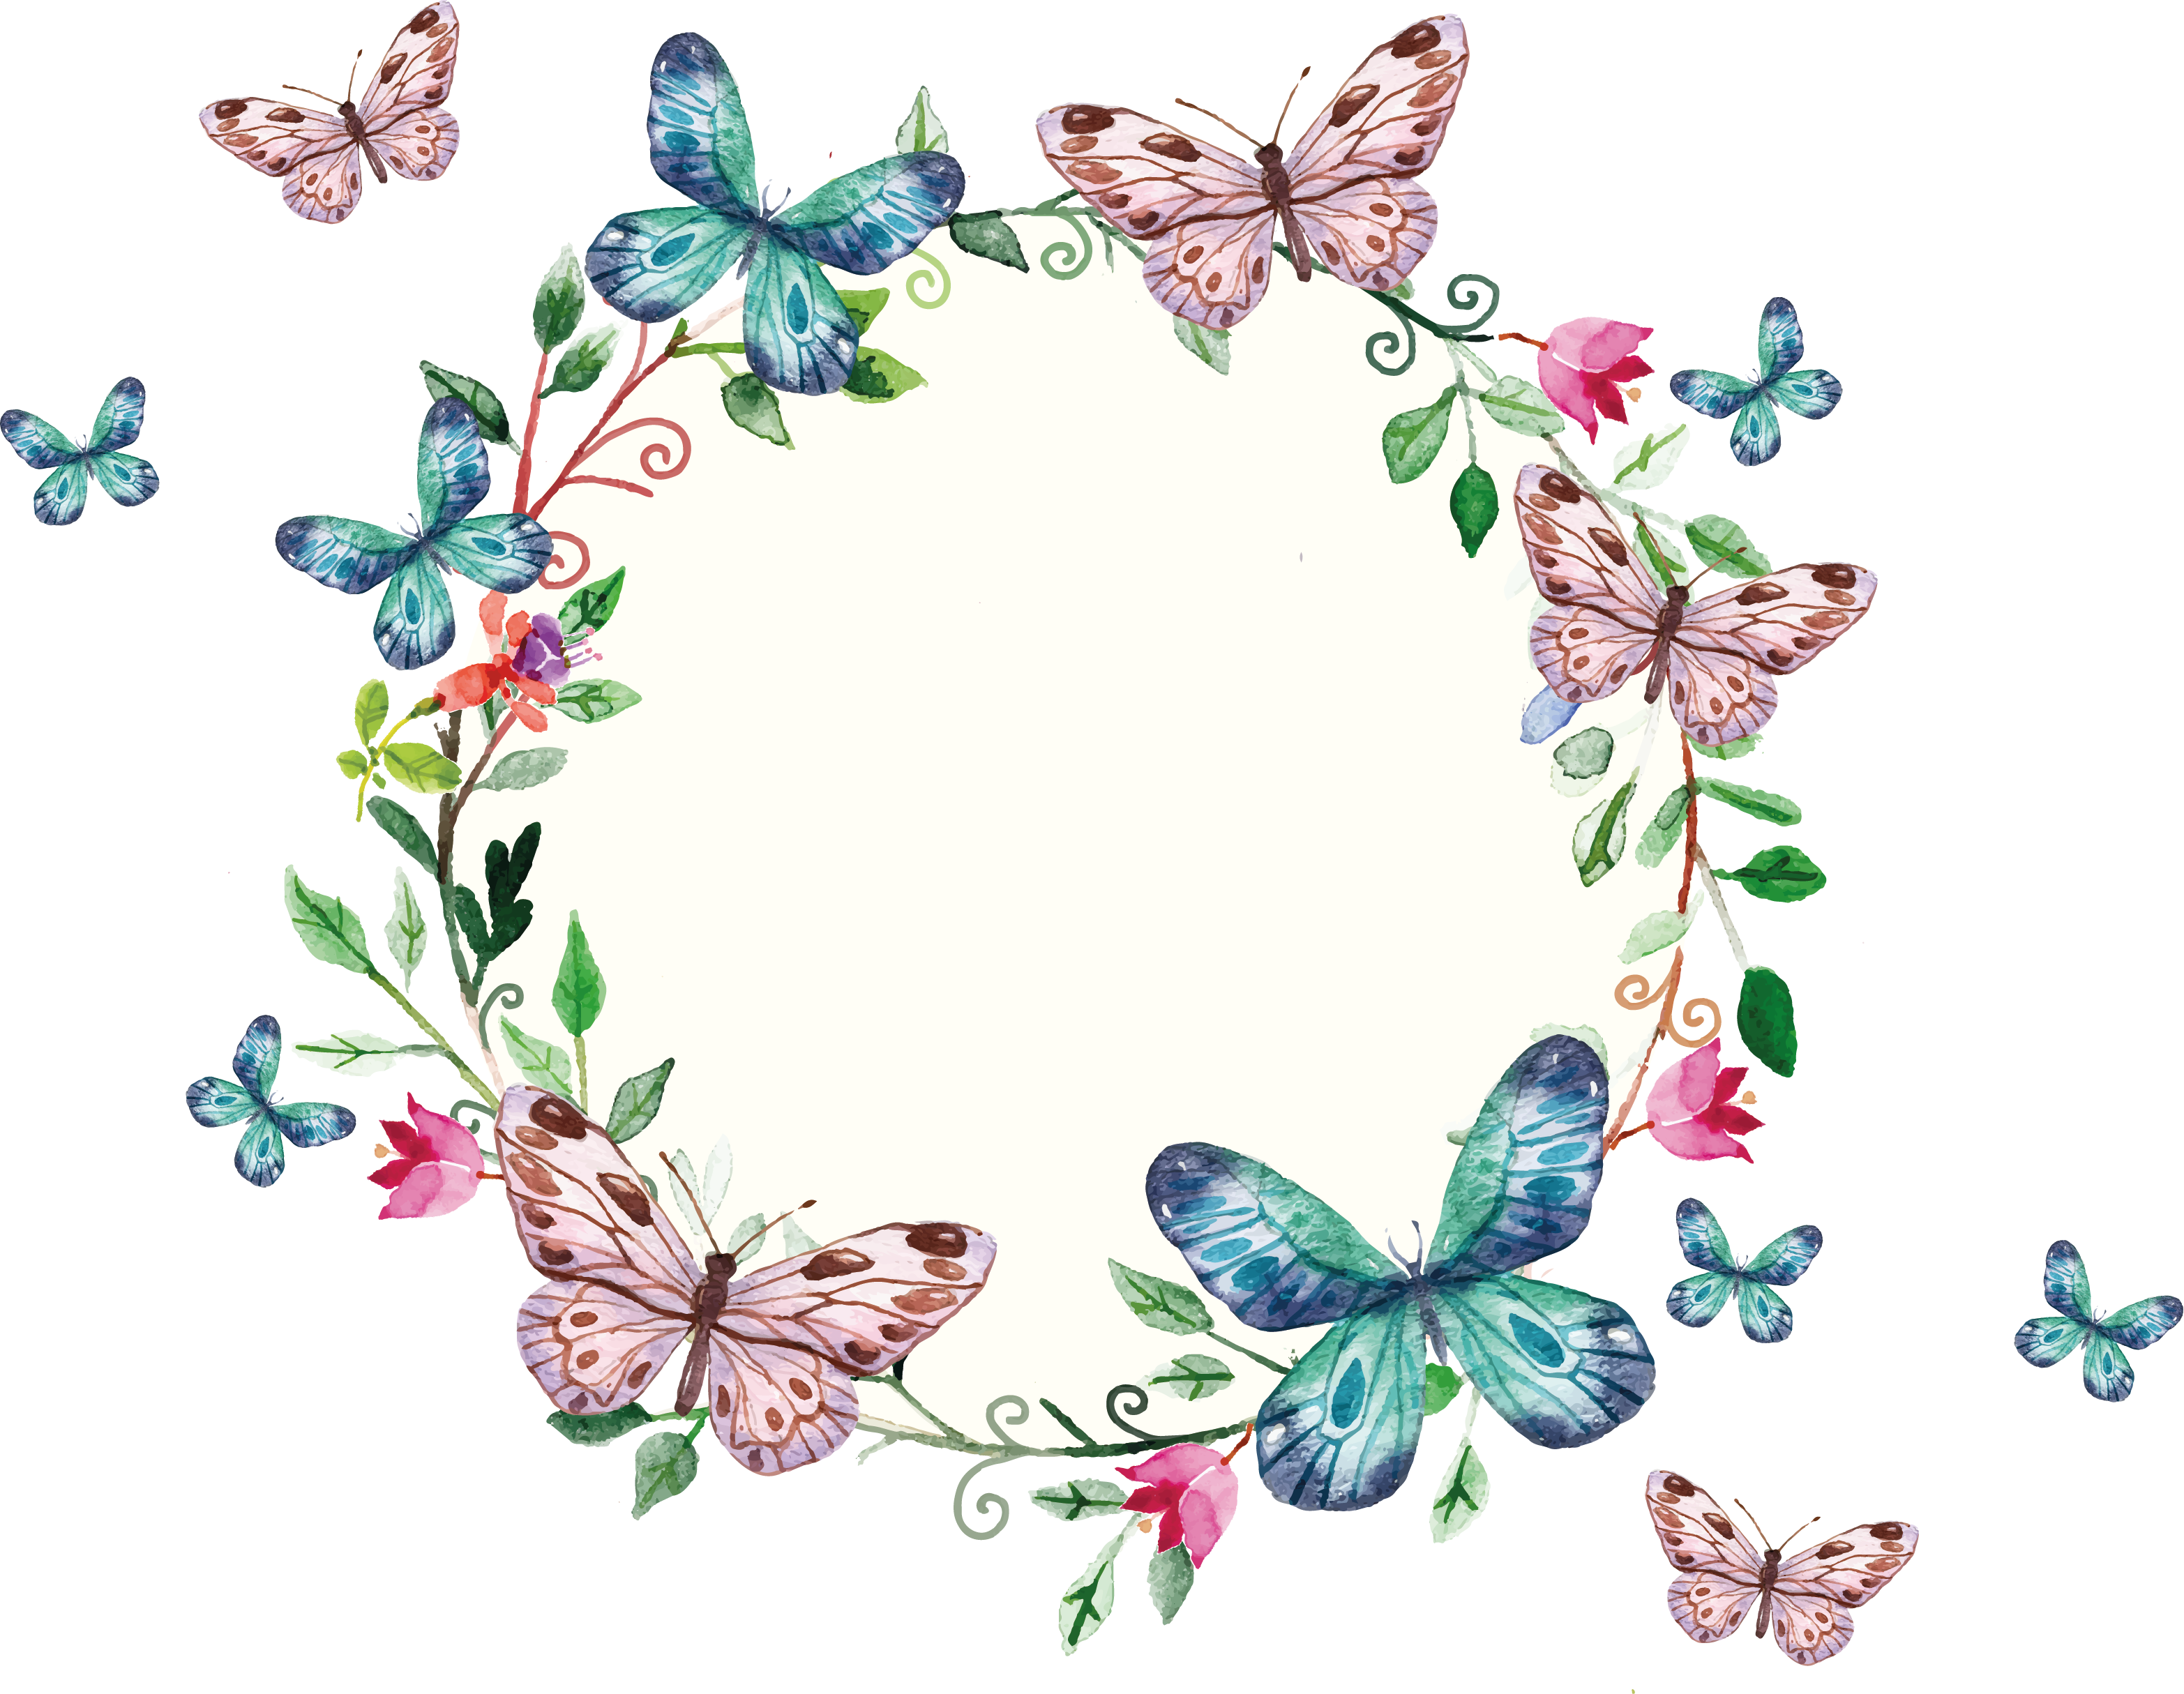 Circle clipart butterfly. Freepi com floral wreath